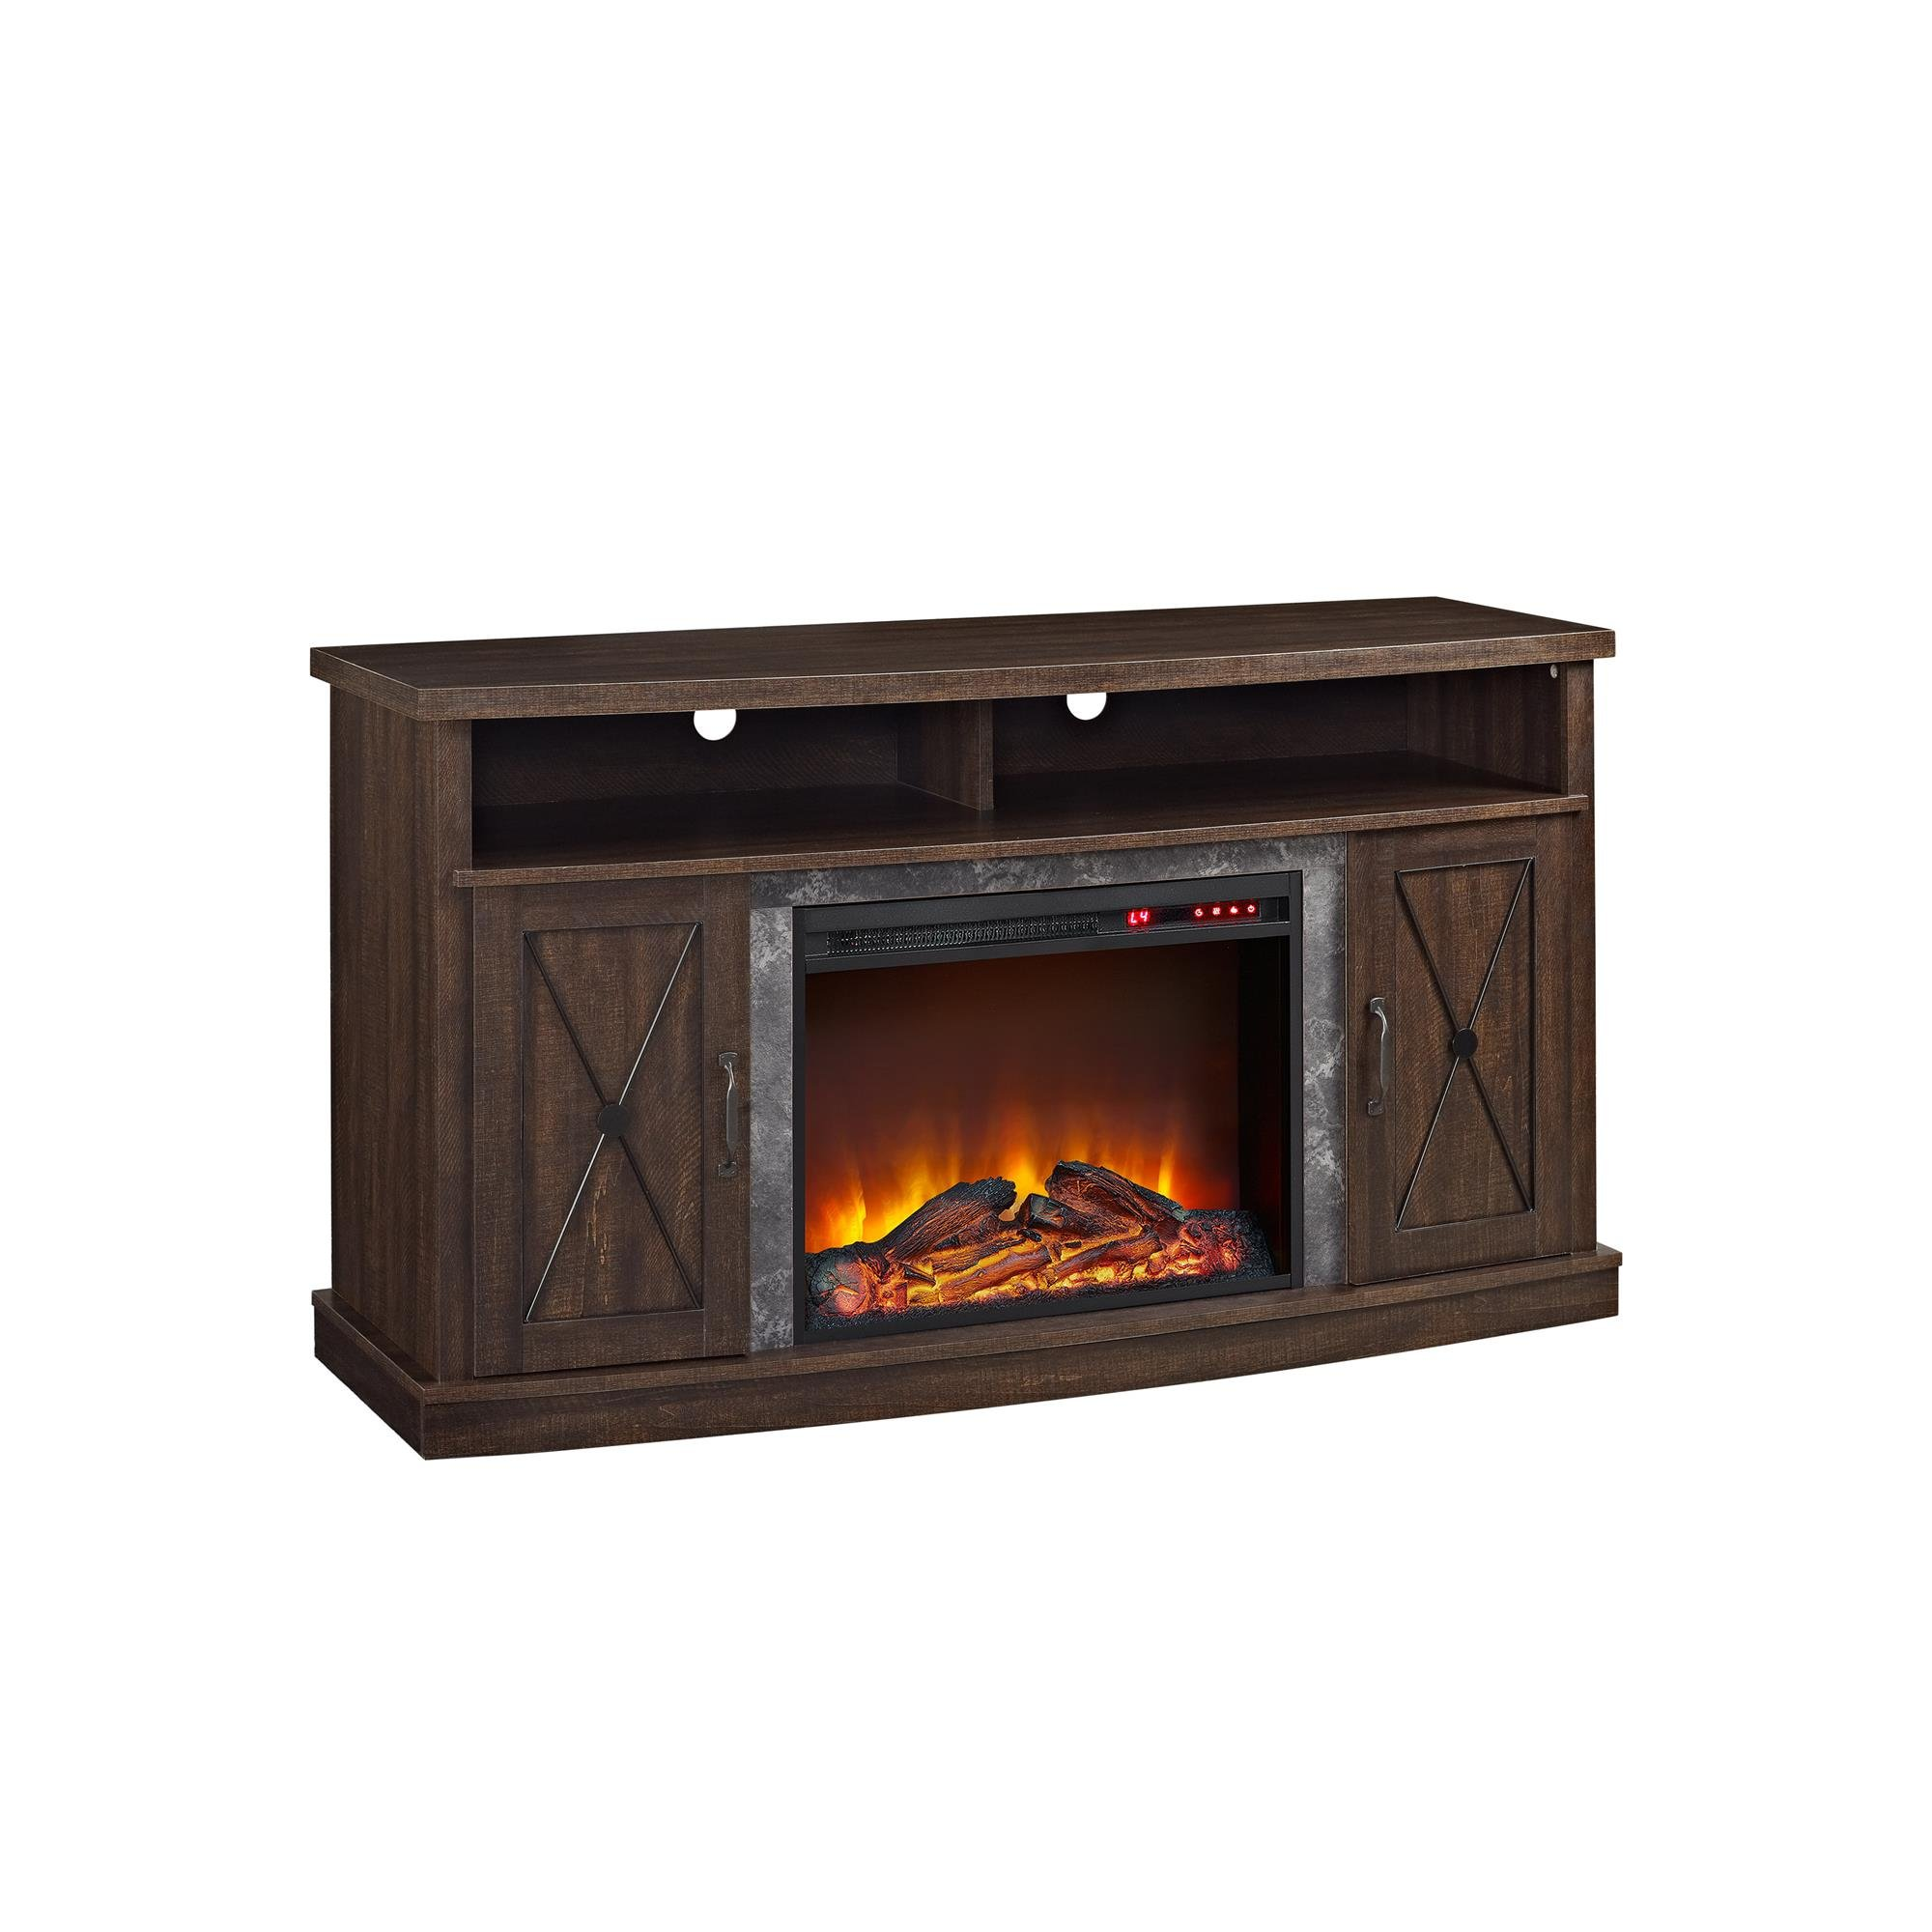 Ameriwood Home Barrow Creek Electric Fireplace TV Stand for TVs up to 60'', Espre